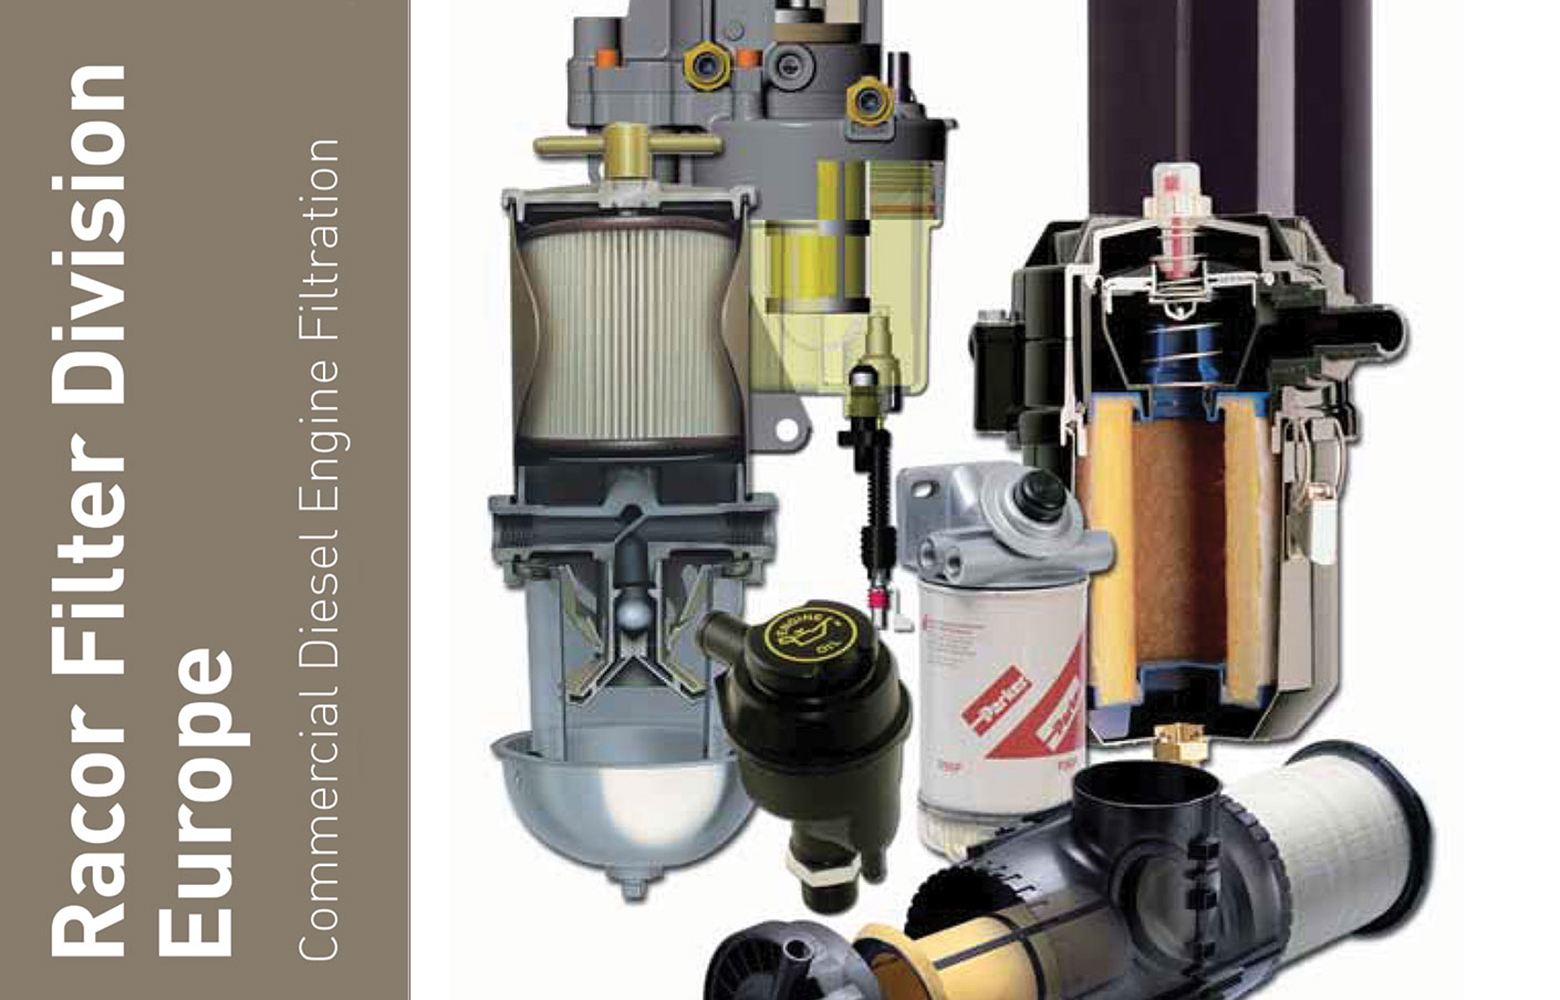 https://www.thomasgroupltd.co.uk/wp-content/uploads/2020/01/Fuel-Filter-Water-Separators-picture.jpg